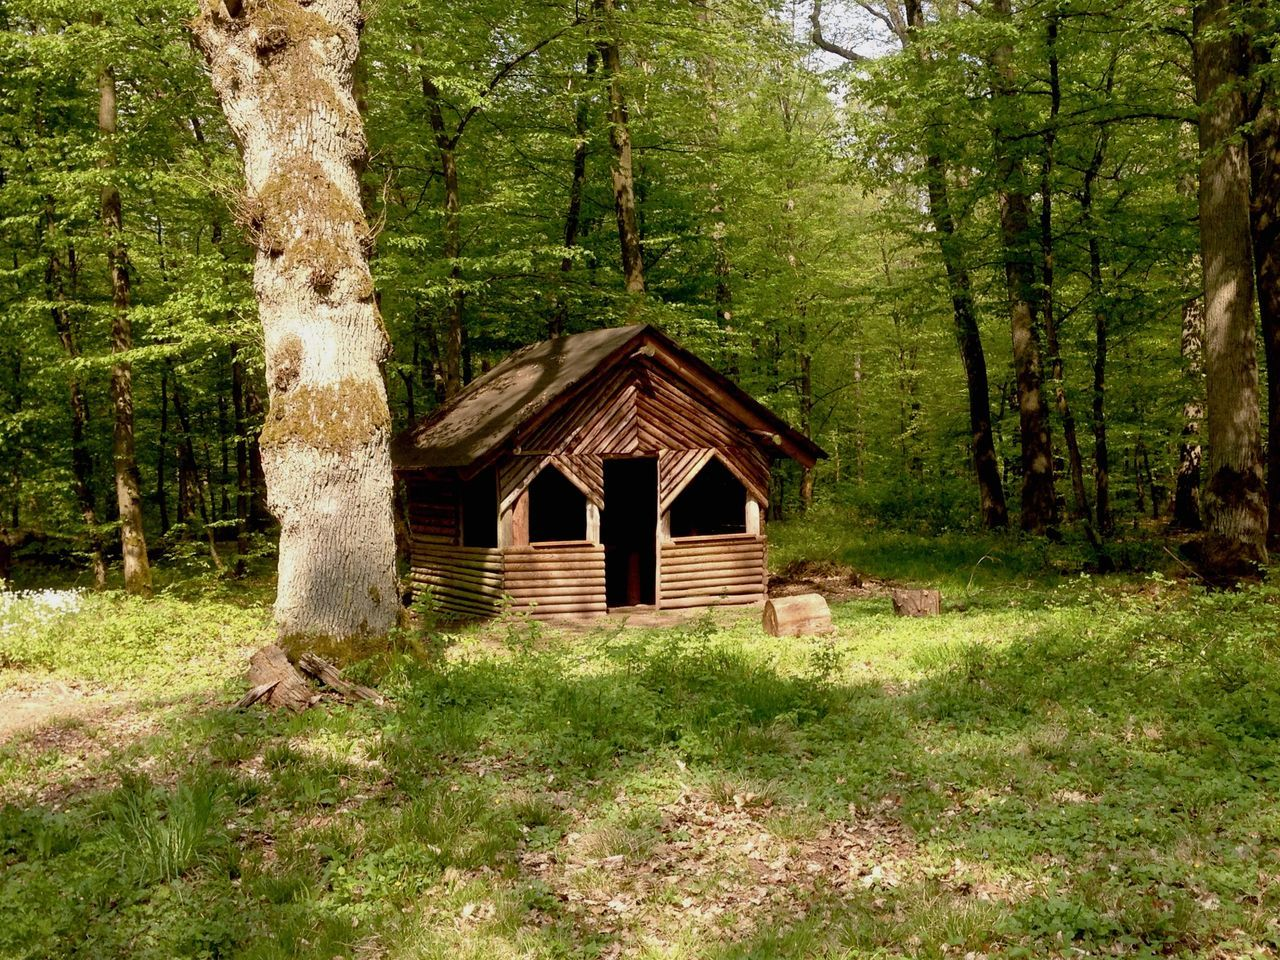 tree, plant, architecture, built structure, land, forest, tree trunk, trunk, hut, nature, grass, growth, day, no people, building exterior, green color, log cabin, landscape, wood - material, house, outdoors, woodland, cottage, cabin